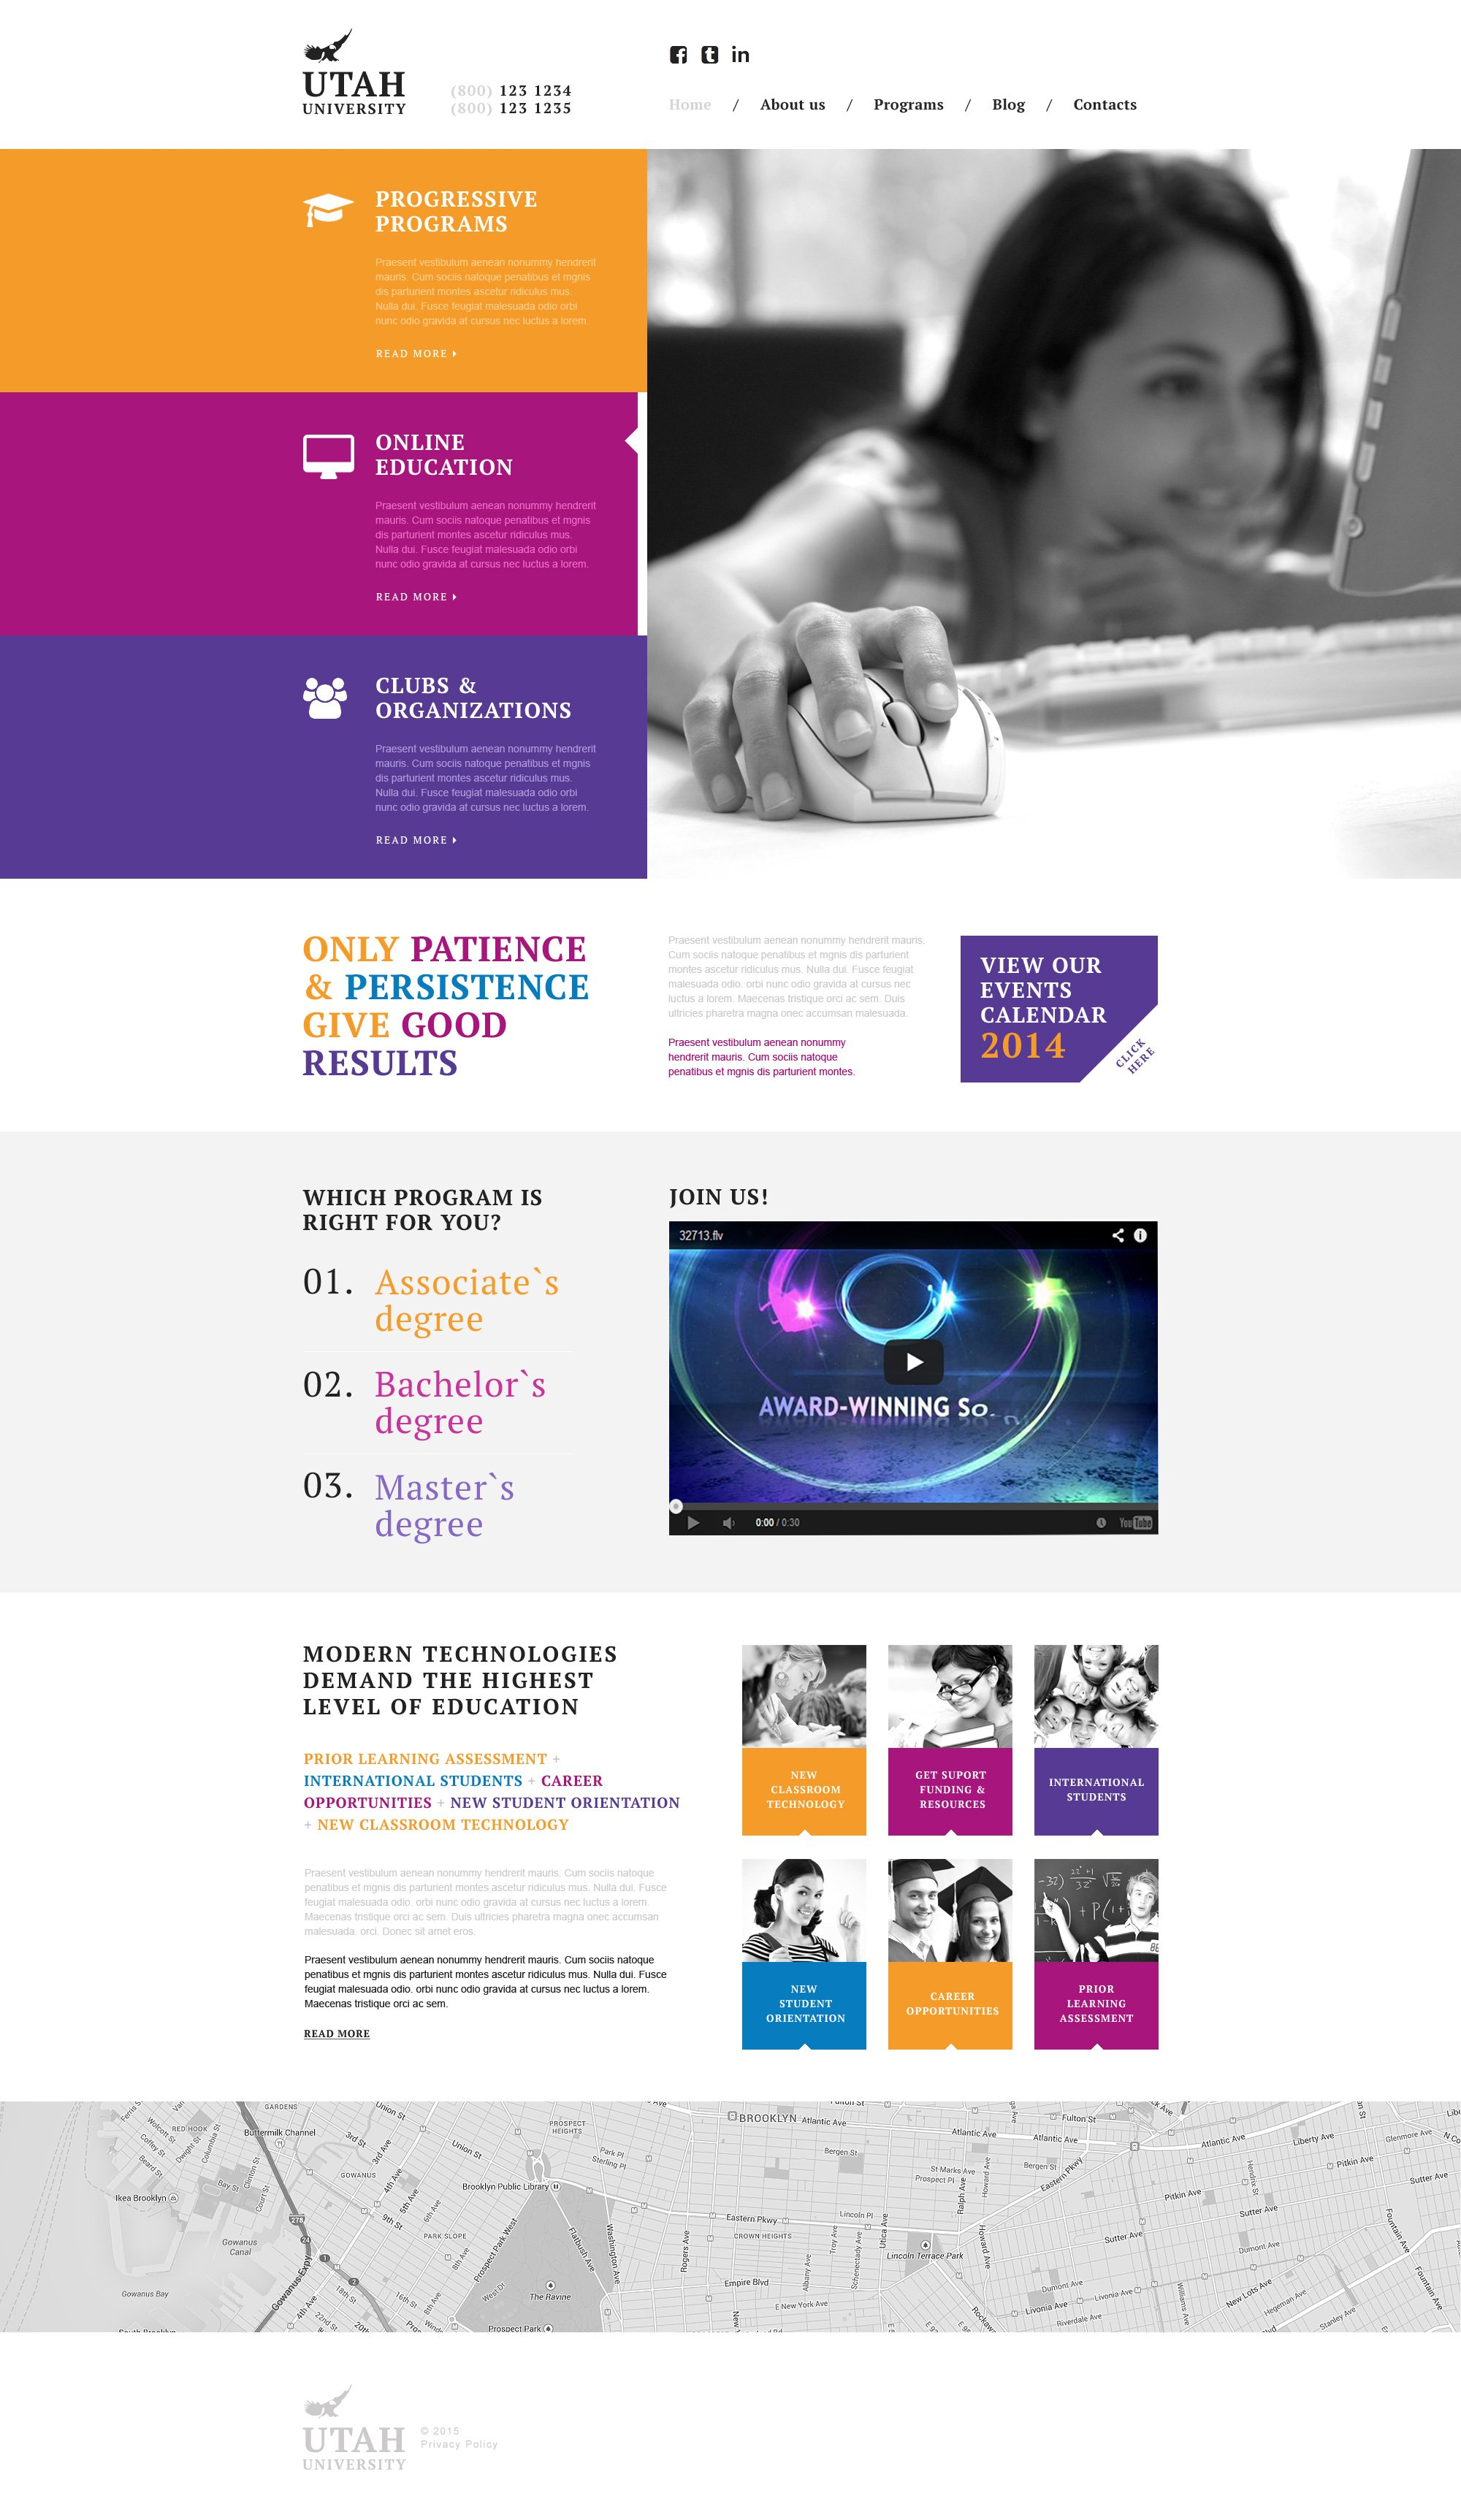 The Utah University Education Center Responsive Javascript Animated Design 53158, one of the best website templates of its kind (education, most popular), also known as Utah university education center website template, e-learning website template, study website template, learn website template, training website template, consulting website template, tutorial website template, distance website template, express website template, learning website template, professional website template, certificate website template, program website template, course website template, management website template, strategic website template, leadership website template, finance website template, accounting website template, tuition website template, faculty website template, knowledge website template, purpose career website template, college and related with Utah university education center, e-learning, study, learn, training, consulting, tutorial, distance, express, learning, professional, certificate, program, course, management, strategic, leadership, finance, accounting, tuition, faculty, knowledge, purpose career, college, etc.